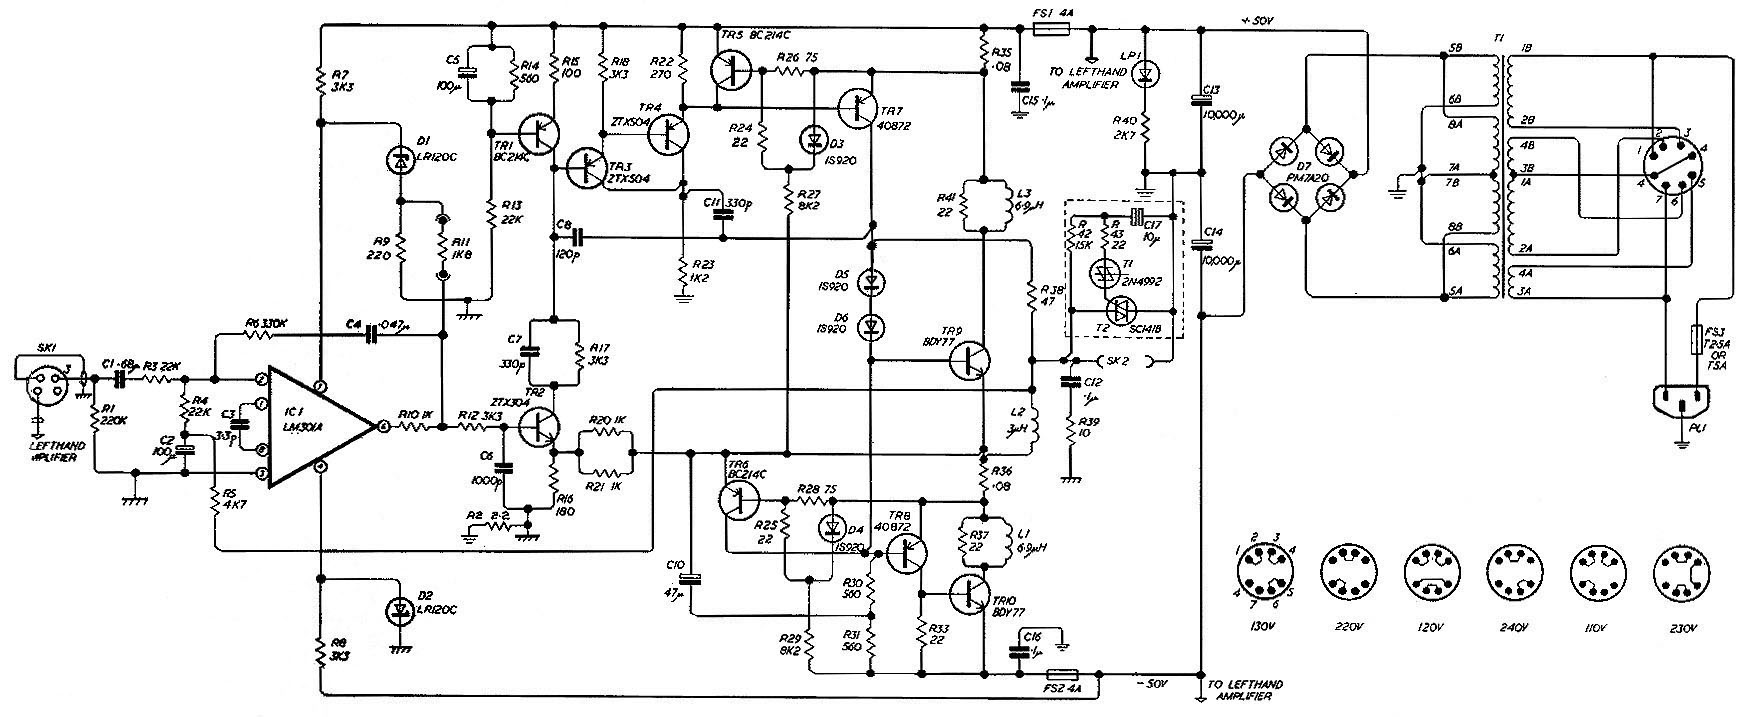 radio wiring diagram with Schematic on 2013 Ta a Wiring Diagram as well Dashboard Wiring Diagram For 1994 Ford F150 also Toyota Celica 1991 Fuse Box moreover P 0900c152800c2a65 further 0byhn Firing Order 1999 Chevy Malibu 3.